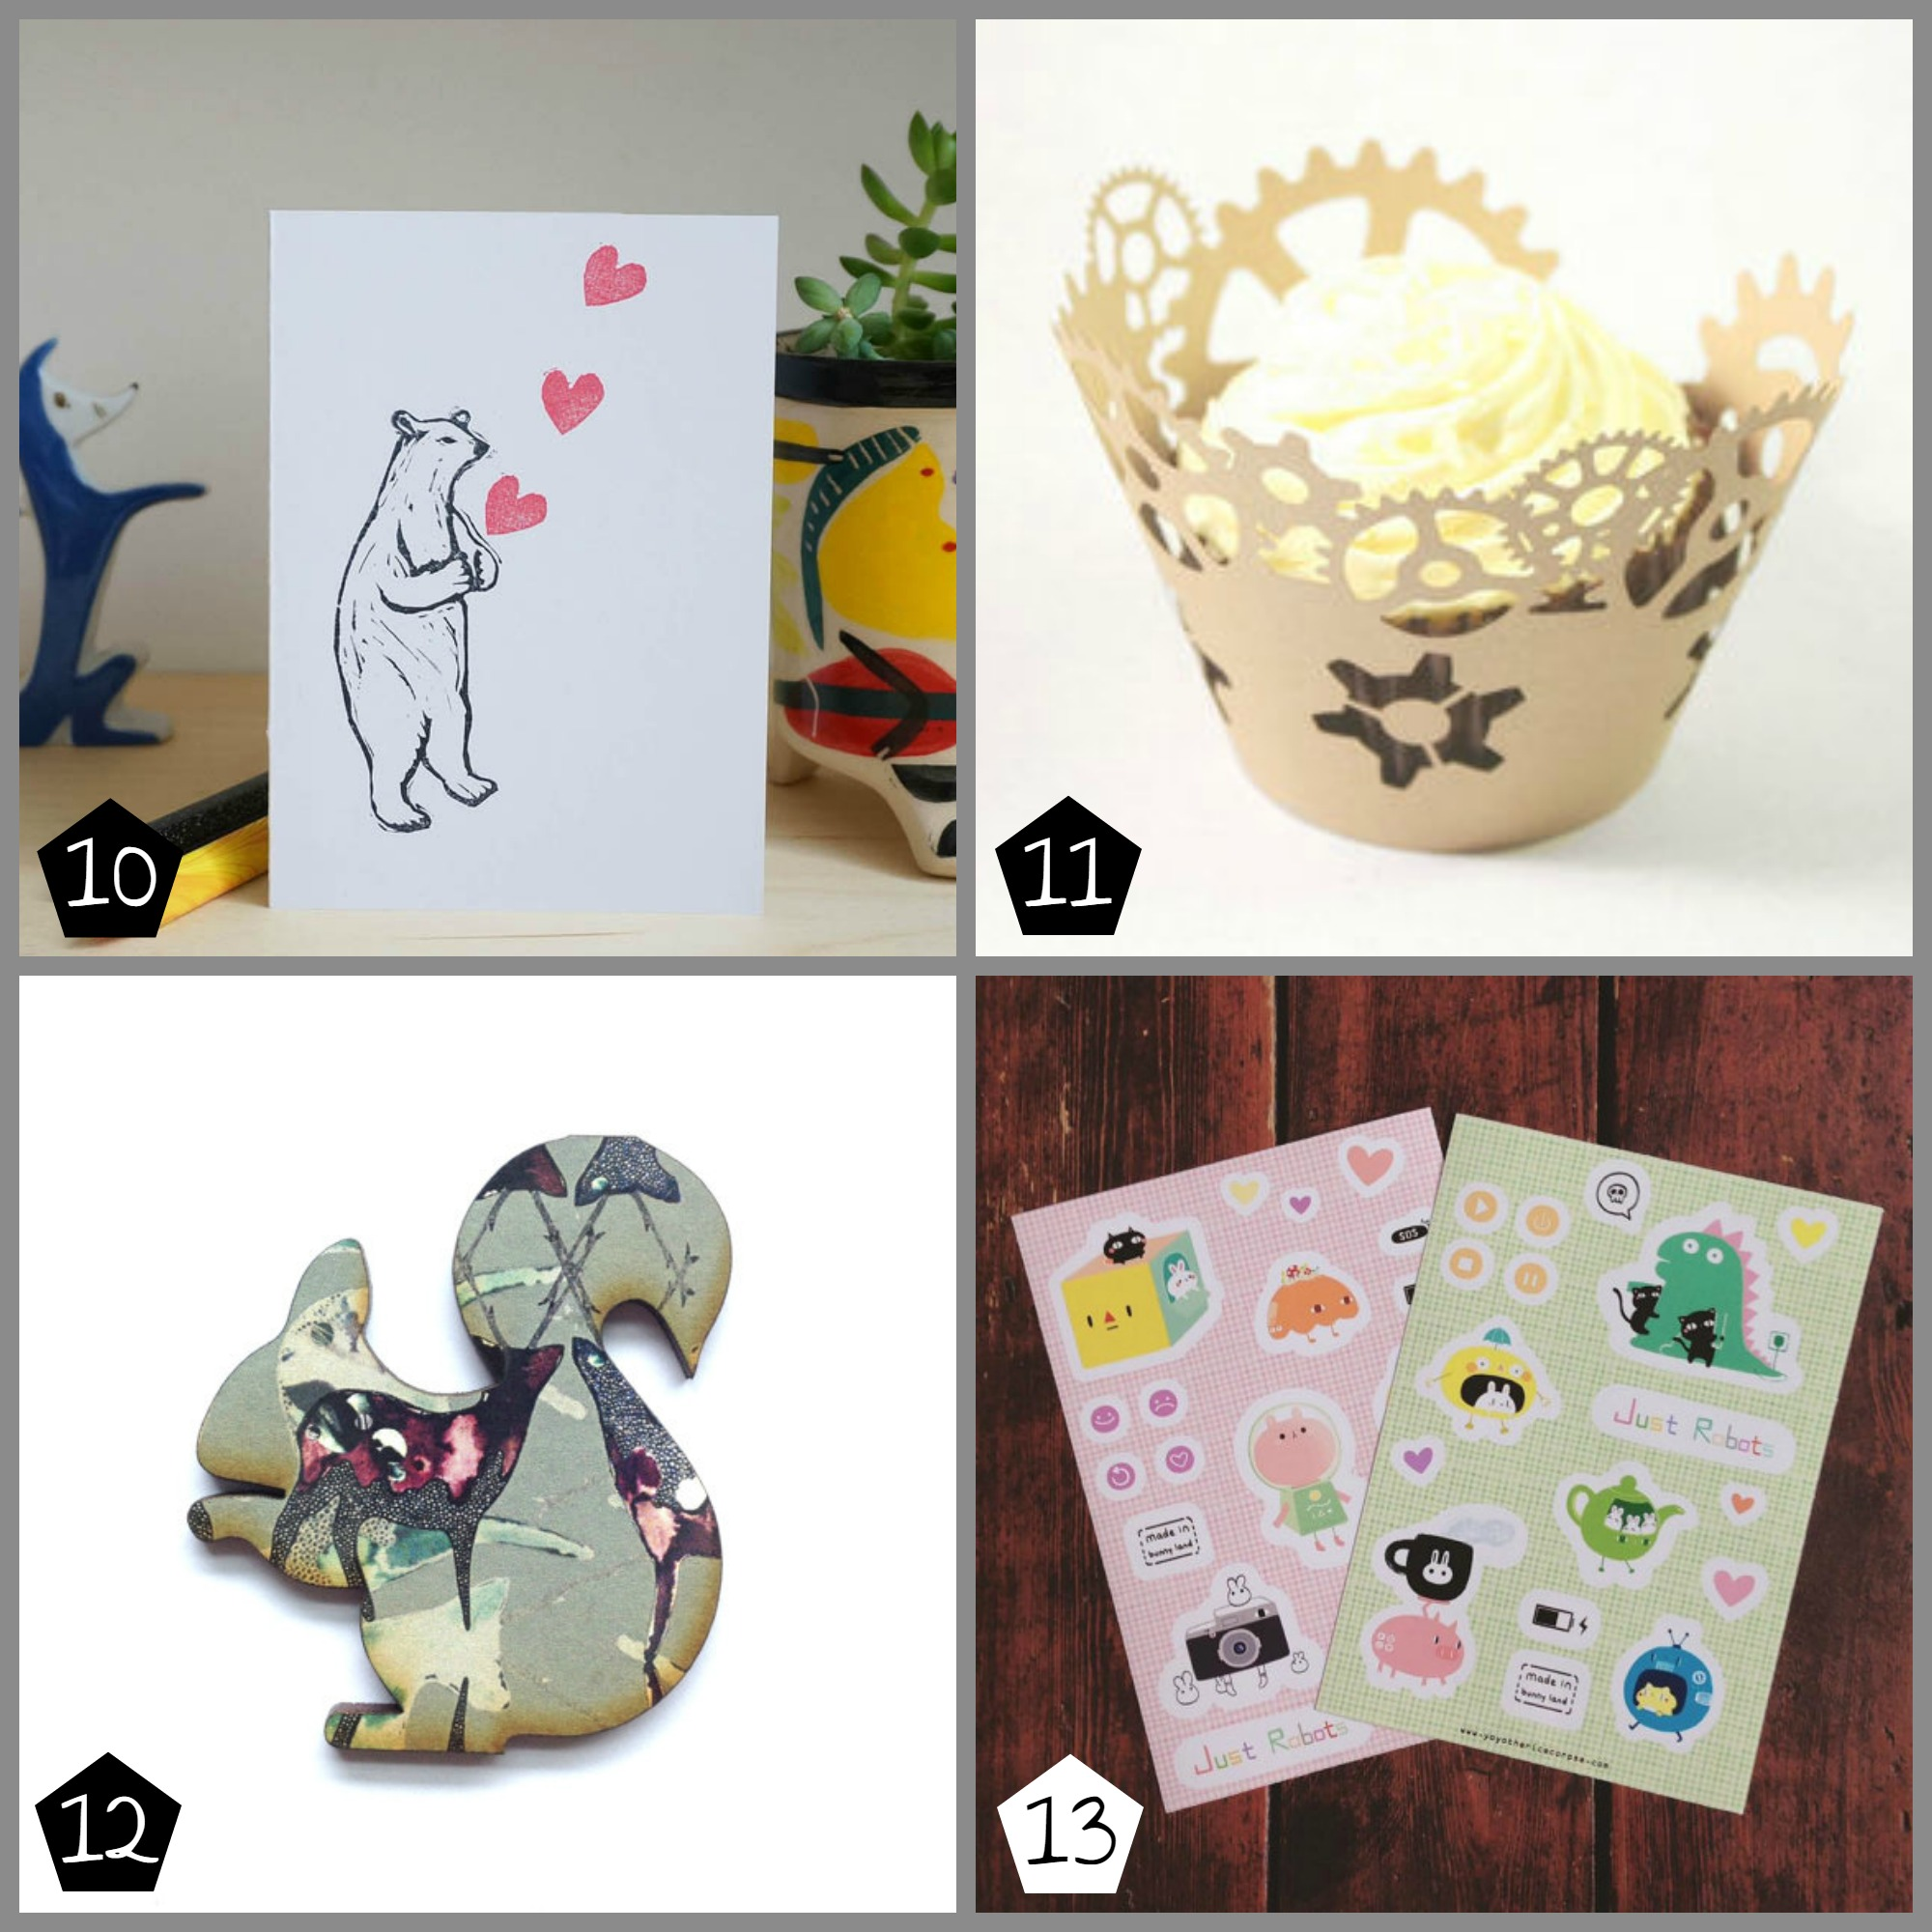 10.  Takako Copeland  Greeting Card £3.50 (Geffrye Museum - 17 Dec), 11.  Paperfiction  12 Cupcake Wrappers £6.80 (Museum of London Docklands - 08 Dec), 12.  Mica Peet  Patterned Squirrel Brooch £10 (Peckham - 12 Dec), 13.  Yoyo The Ricecorpse  A5 Sticker Sheets £3.50 each (Geffrye Museum - 17 Dec)